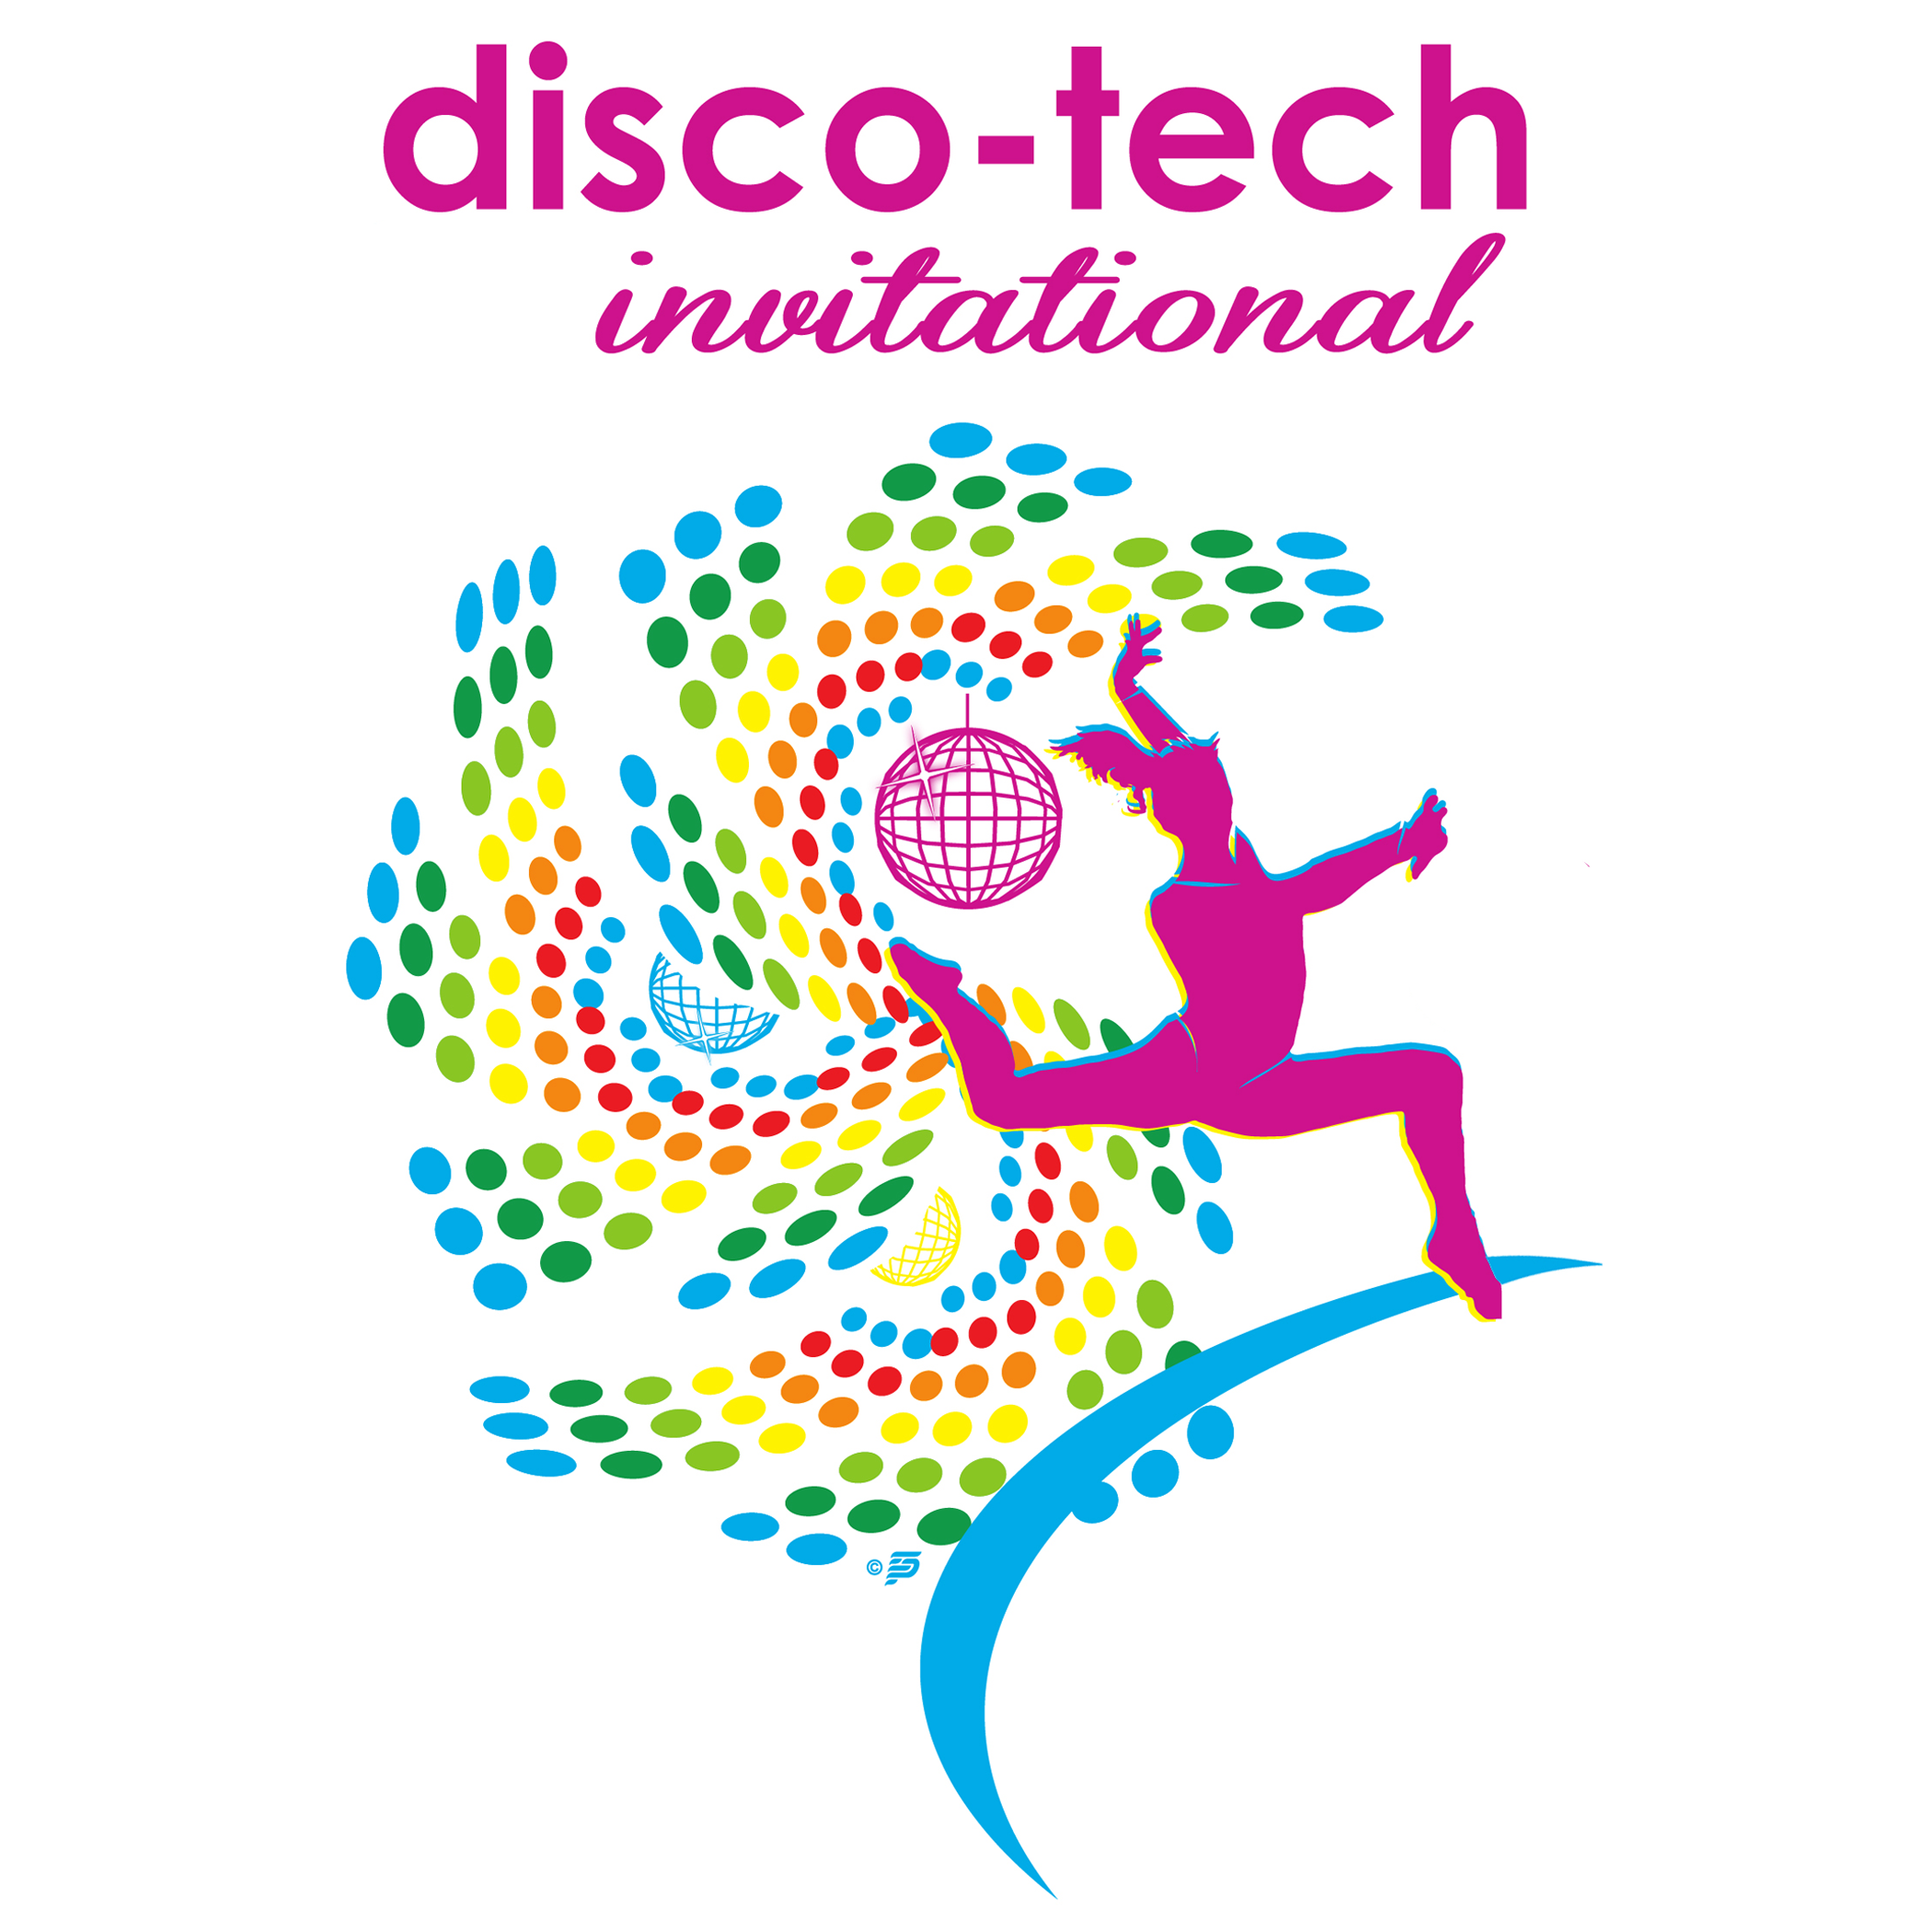 ca-disco-tech-invitational